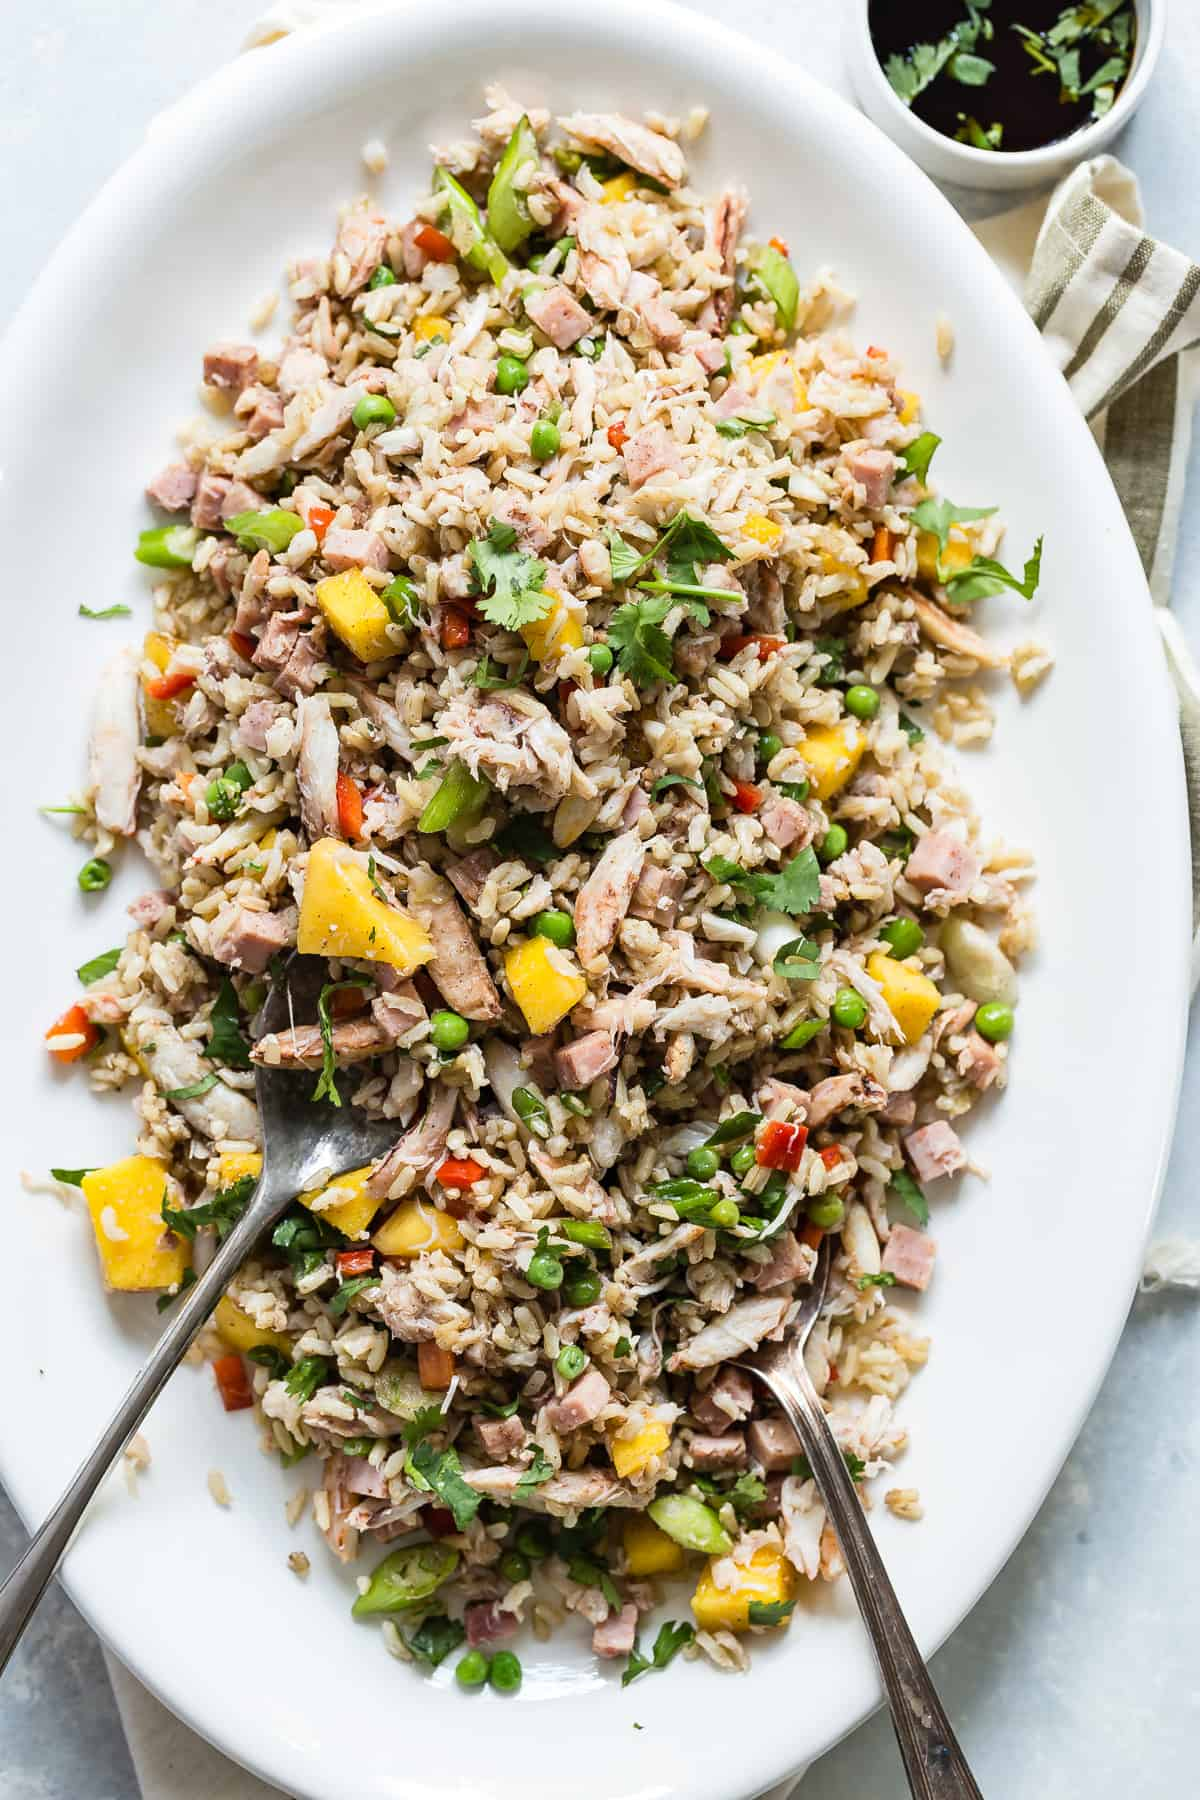 Yummy fried rice packed with crab meat, diced smoked ham, peas and diced mango.